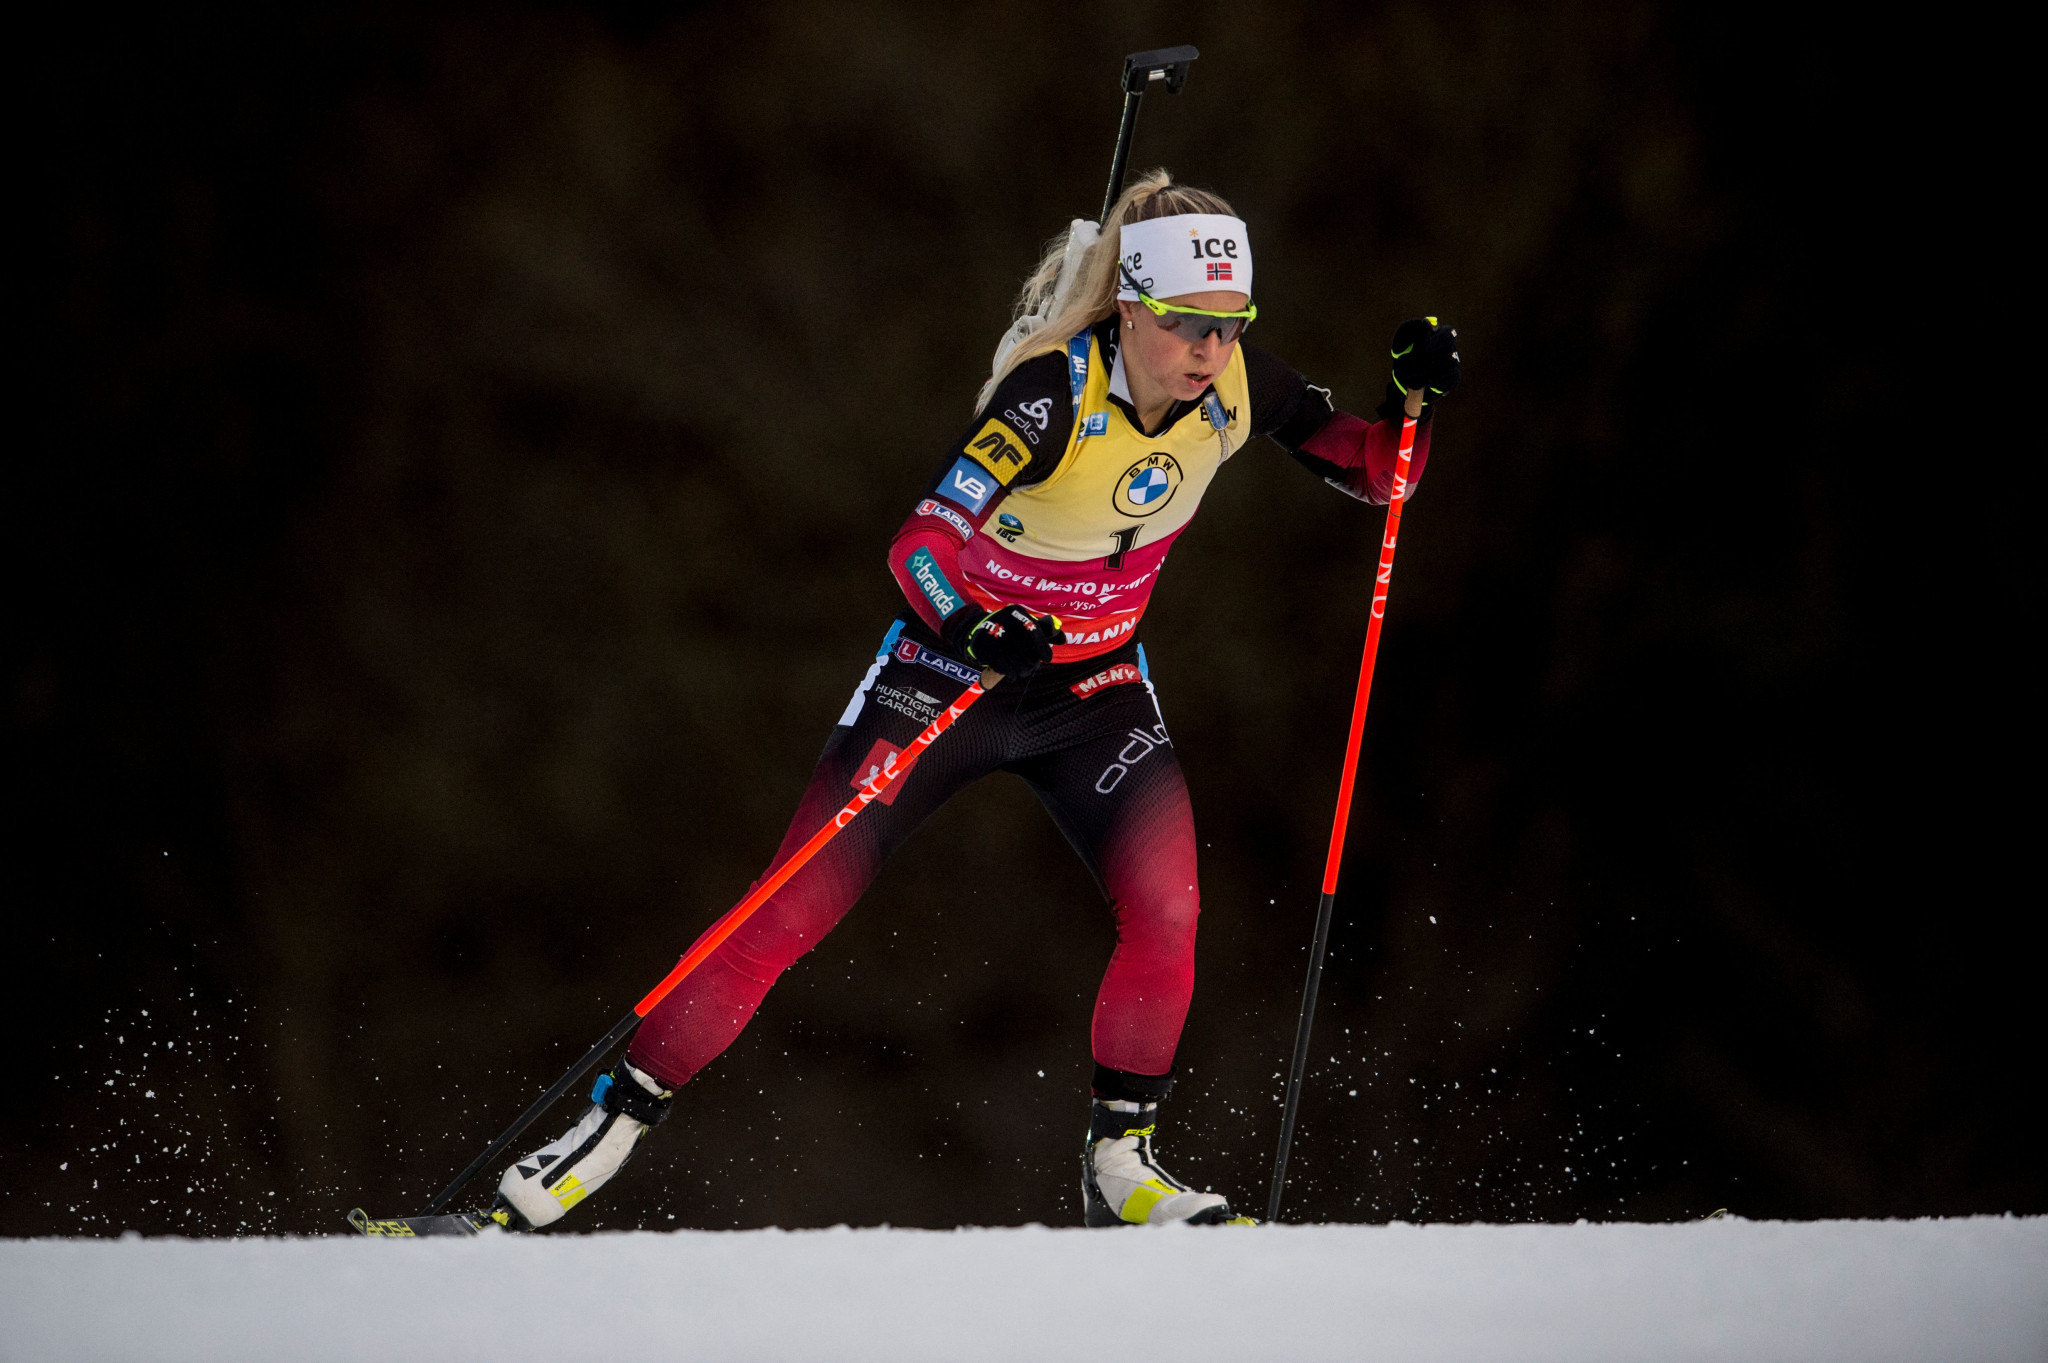 Tiril Eckhoff is a step closer to winning this season's IBU Biathlon World Cup ©Getty Images